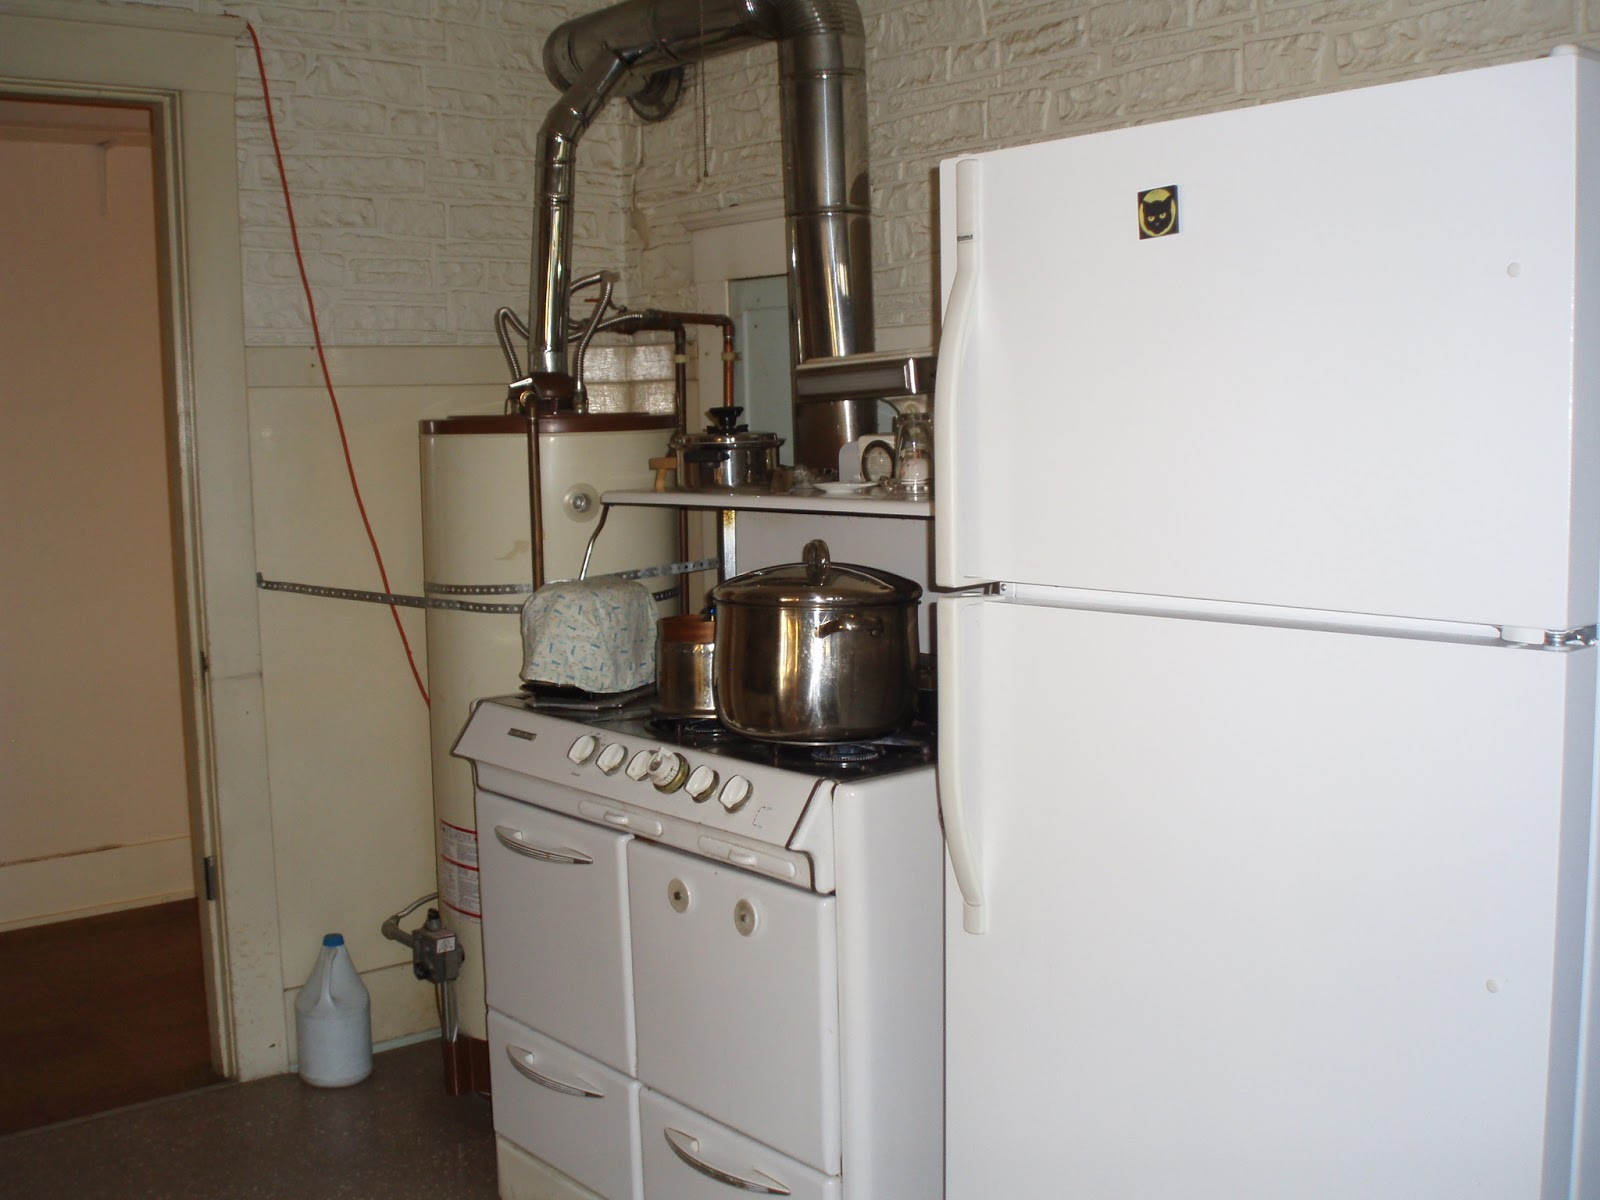 Recycle Archives Midori Haus 1950 Gas O Keefe Merritt Stove Wiring Diagram Fridge Water Heater The In Kitchen Was Literally Placed Center Of House Seismic Strapping Prevented Use